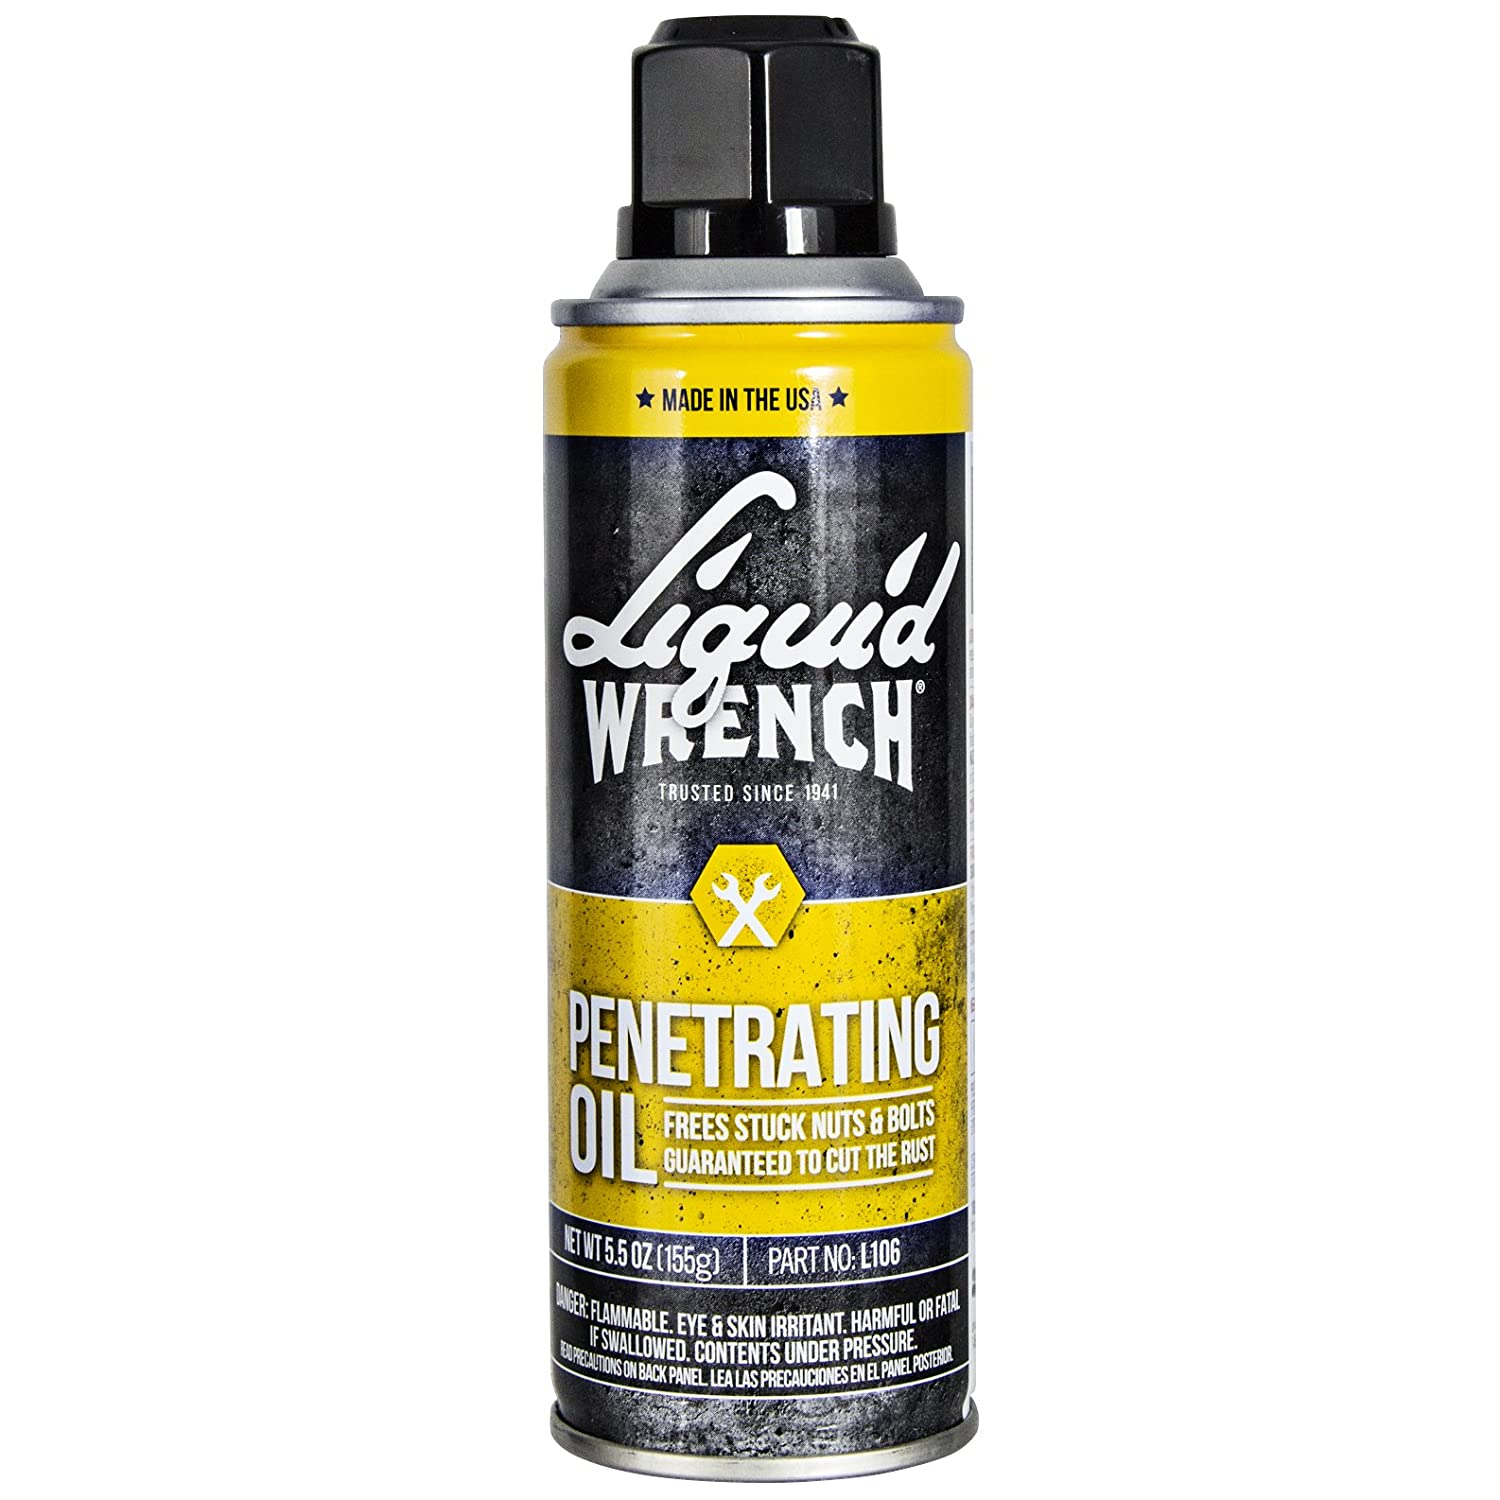 1. Liquid wrench penetrating the oil